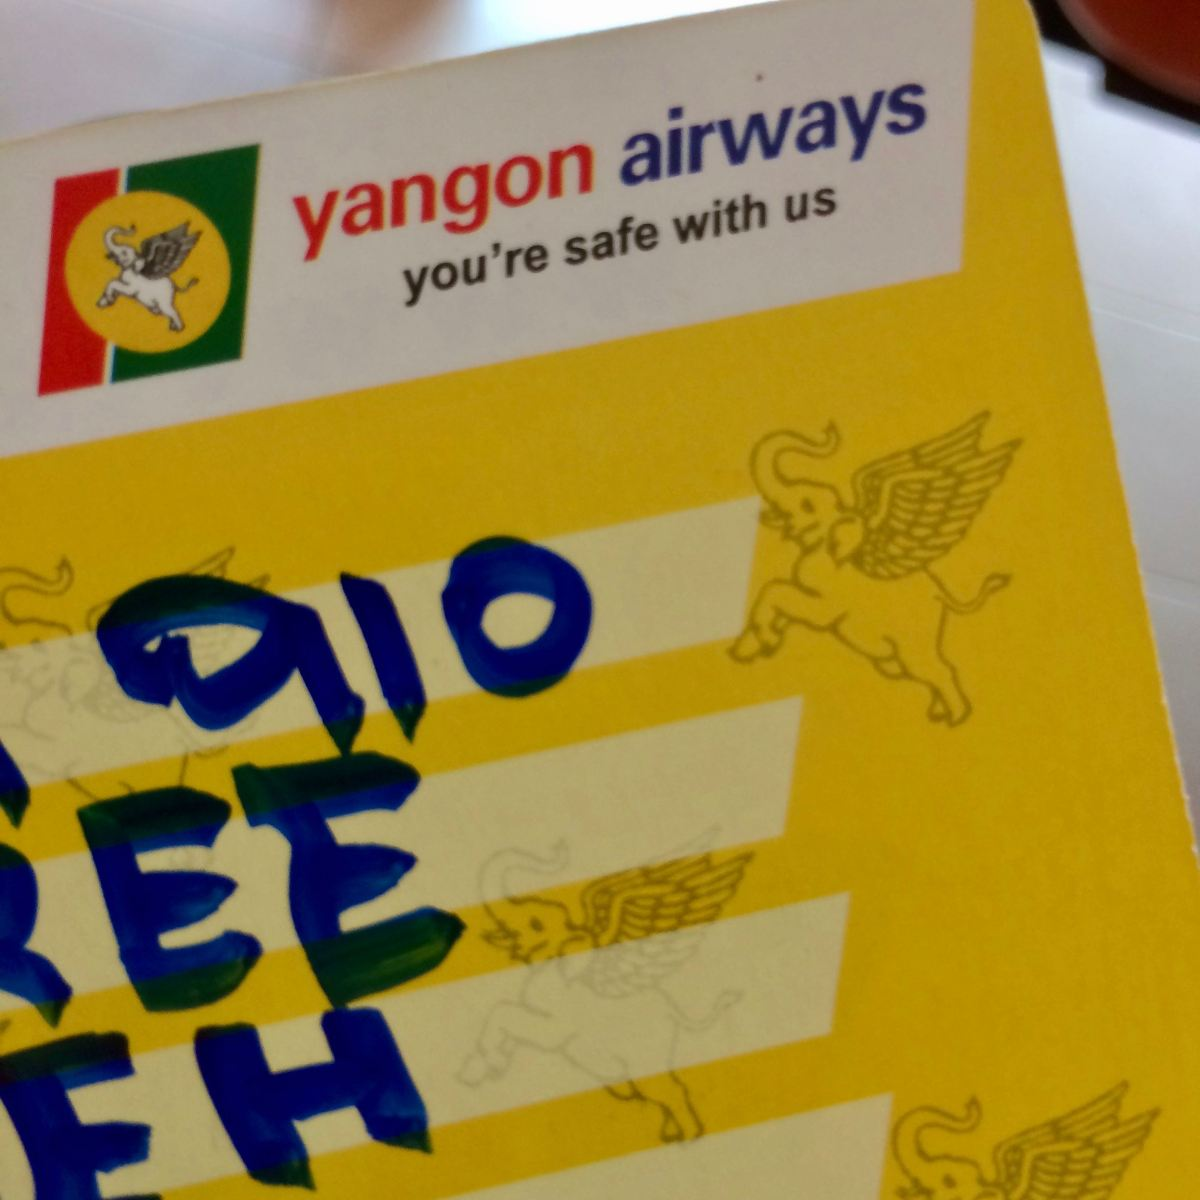 Yangon Airways - you're safe with us (boarding pass)